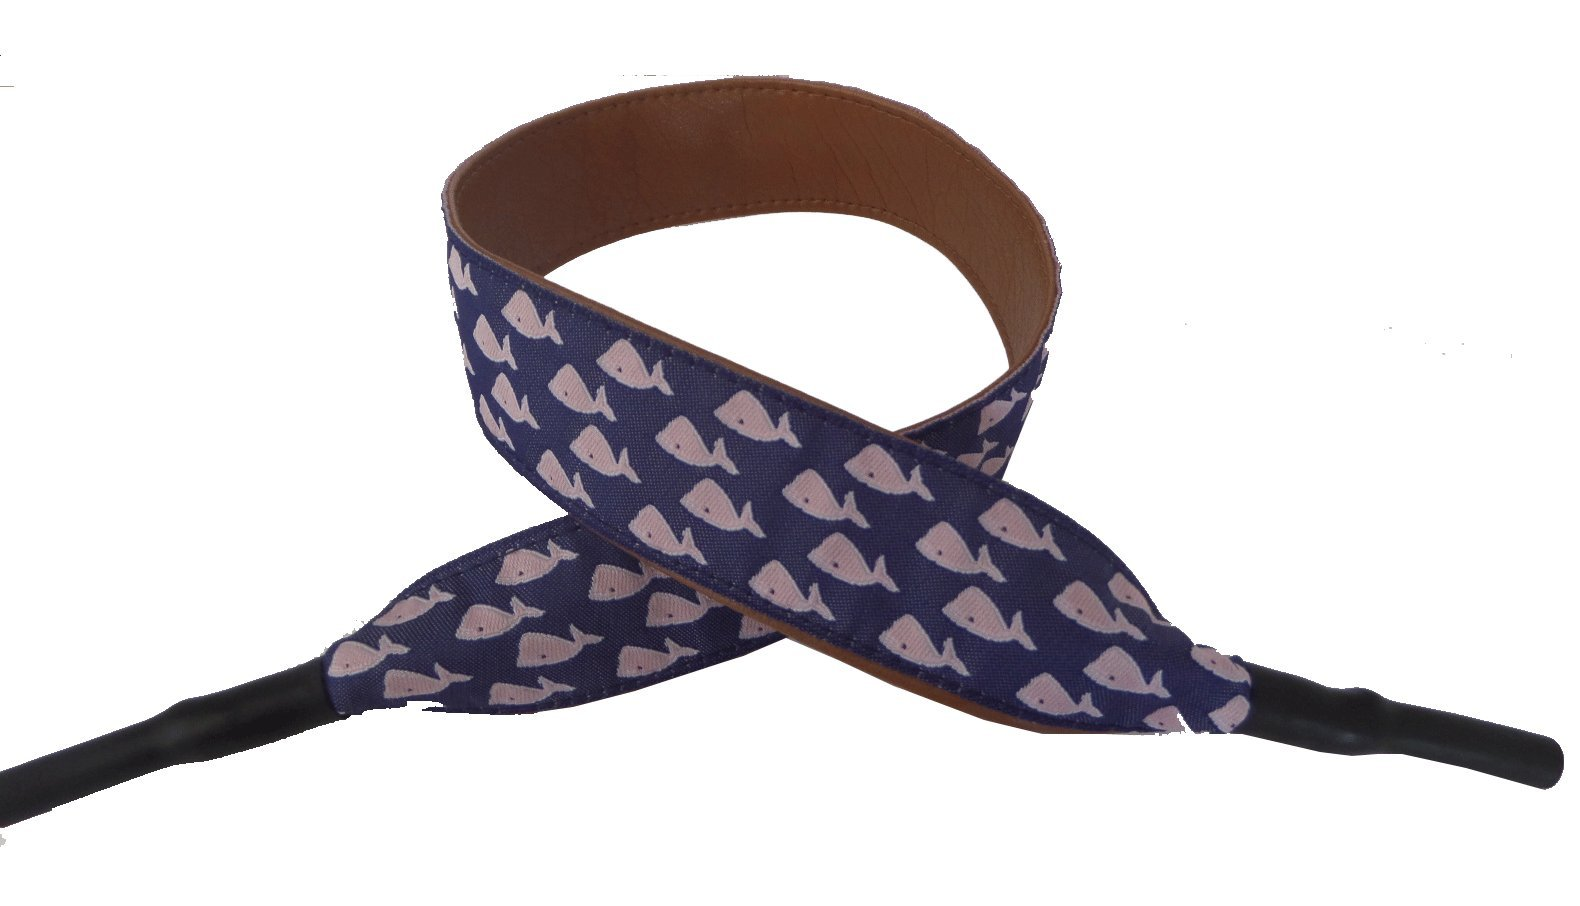 No27 Unisex Nautical Whale School Ribbon with Leather Material Eyeglass Croaky 15 Inches